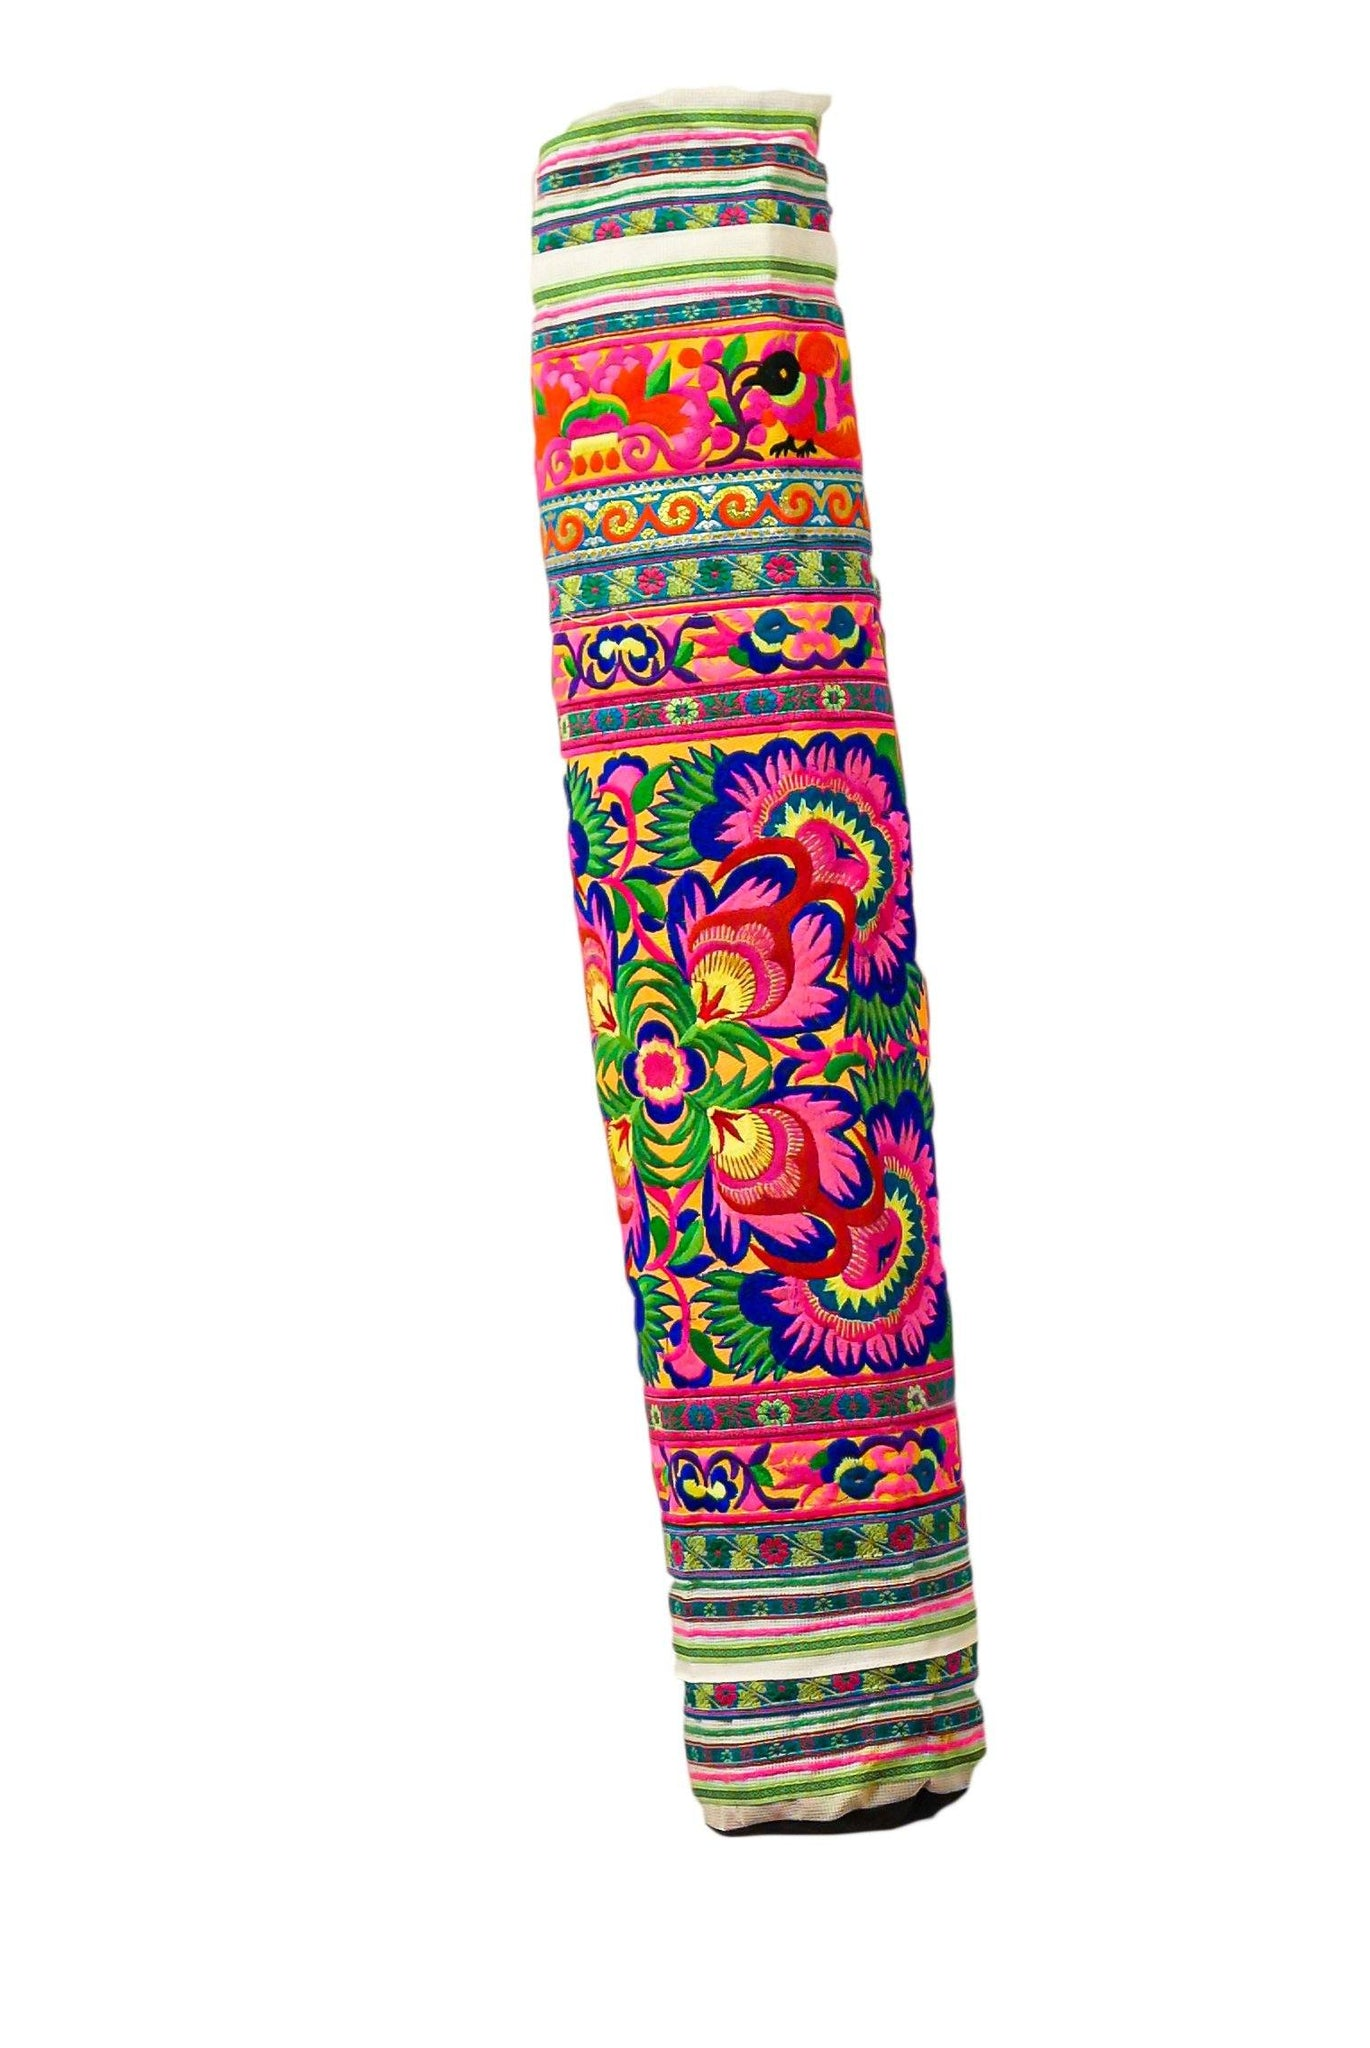 Bohemian Yoga Mat Bag Carrier Embroidered Hill tribe ethnic D - CCCollections